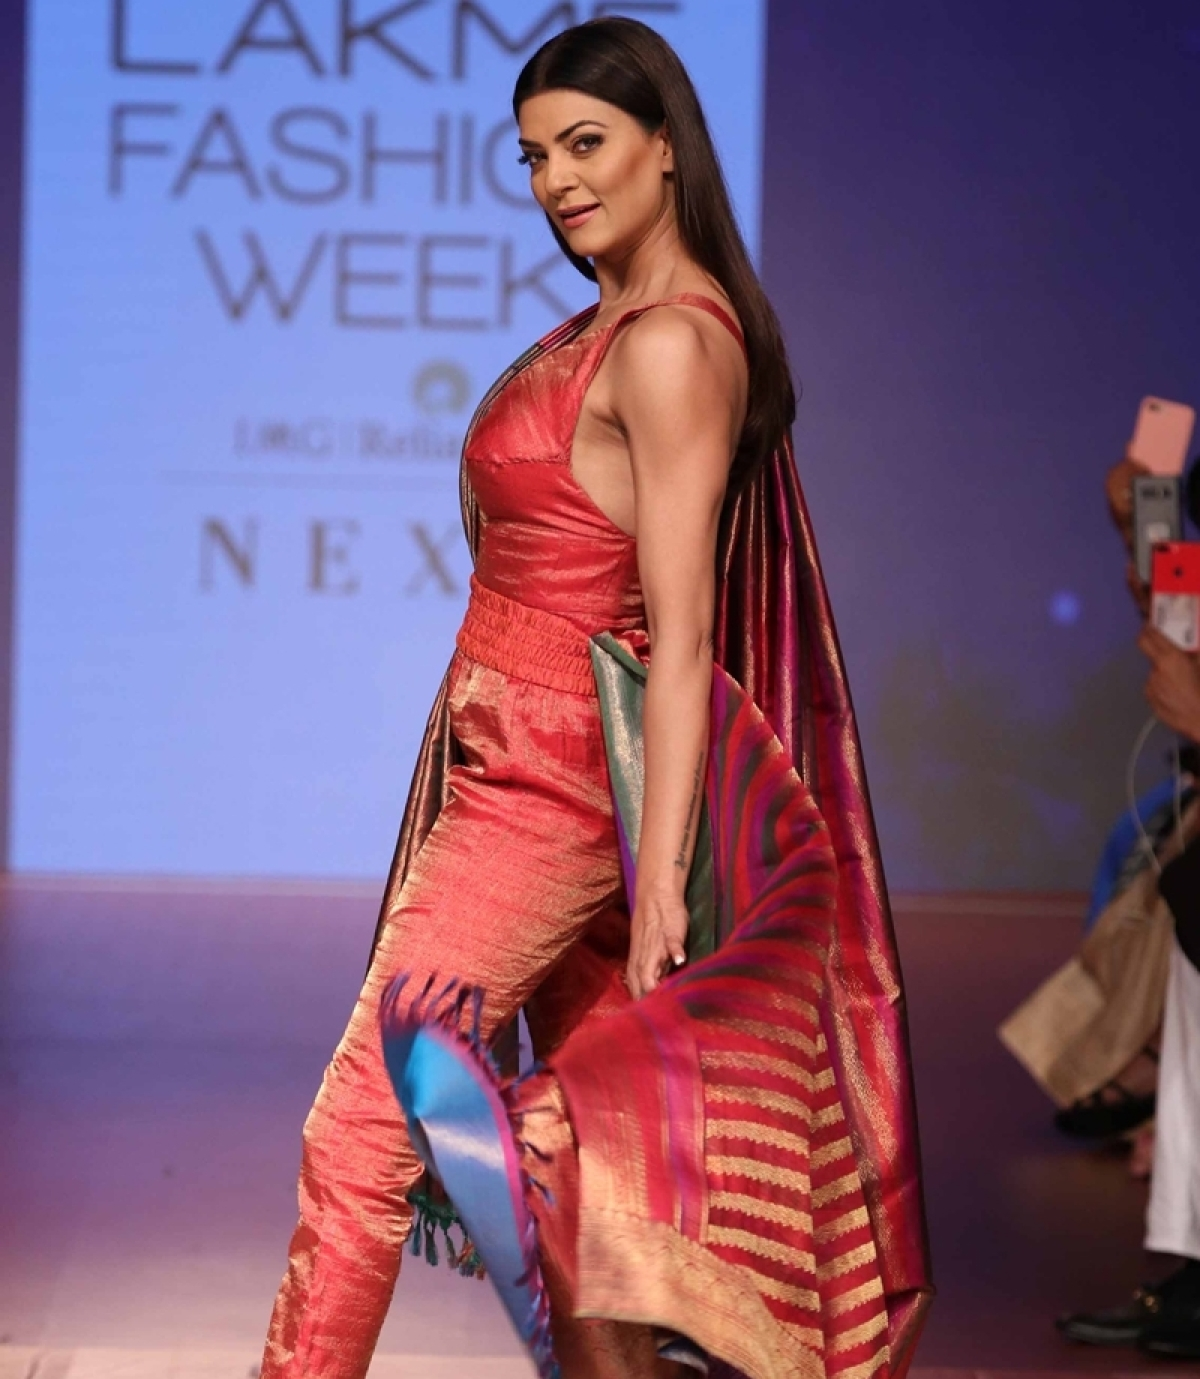 Lakme Fashion Week 2018 Day 2: Sushmita Sen dazzles on ramp in a jumpsuit with saree